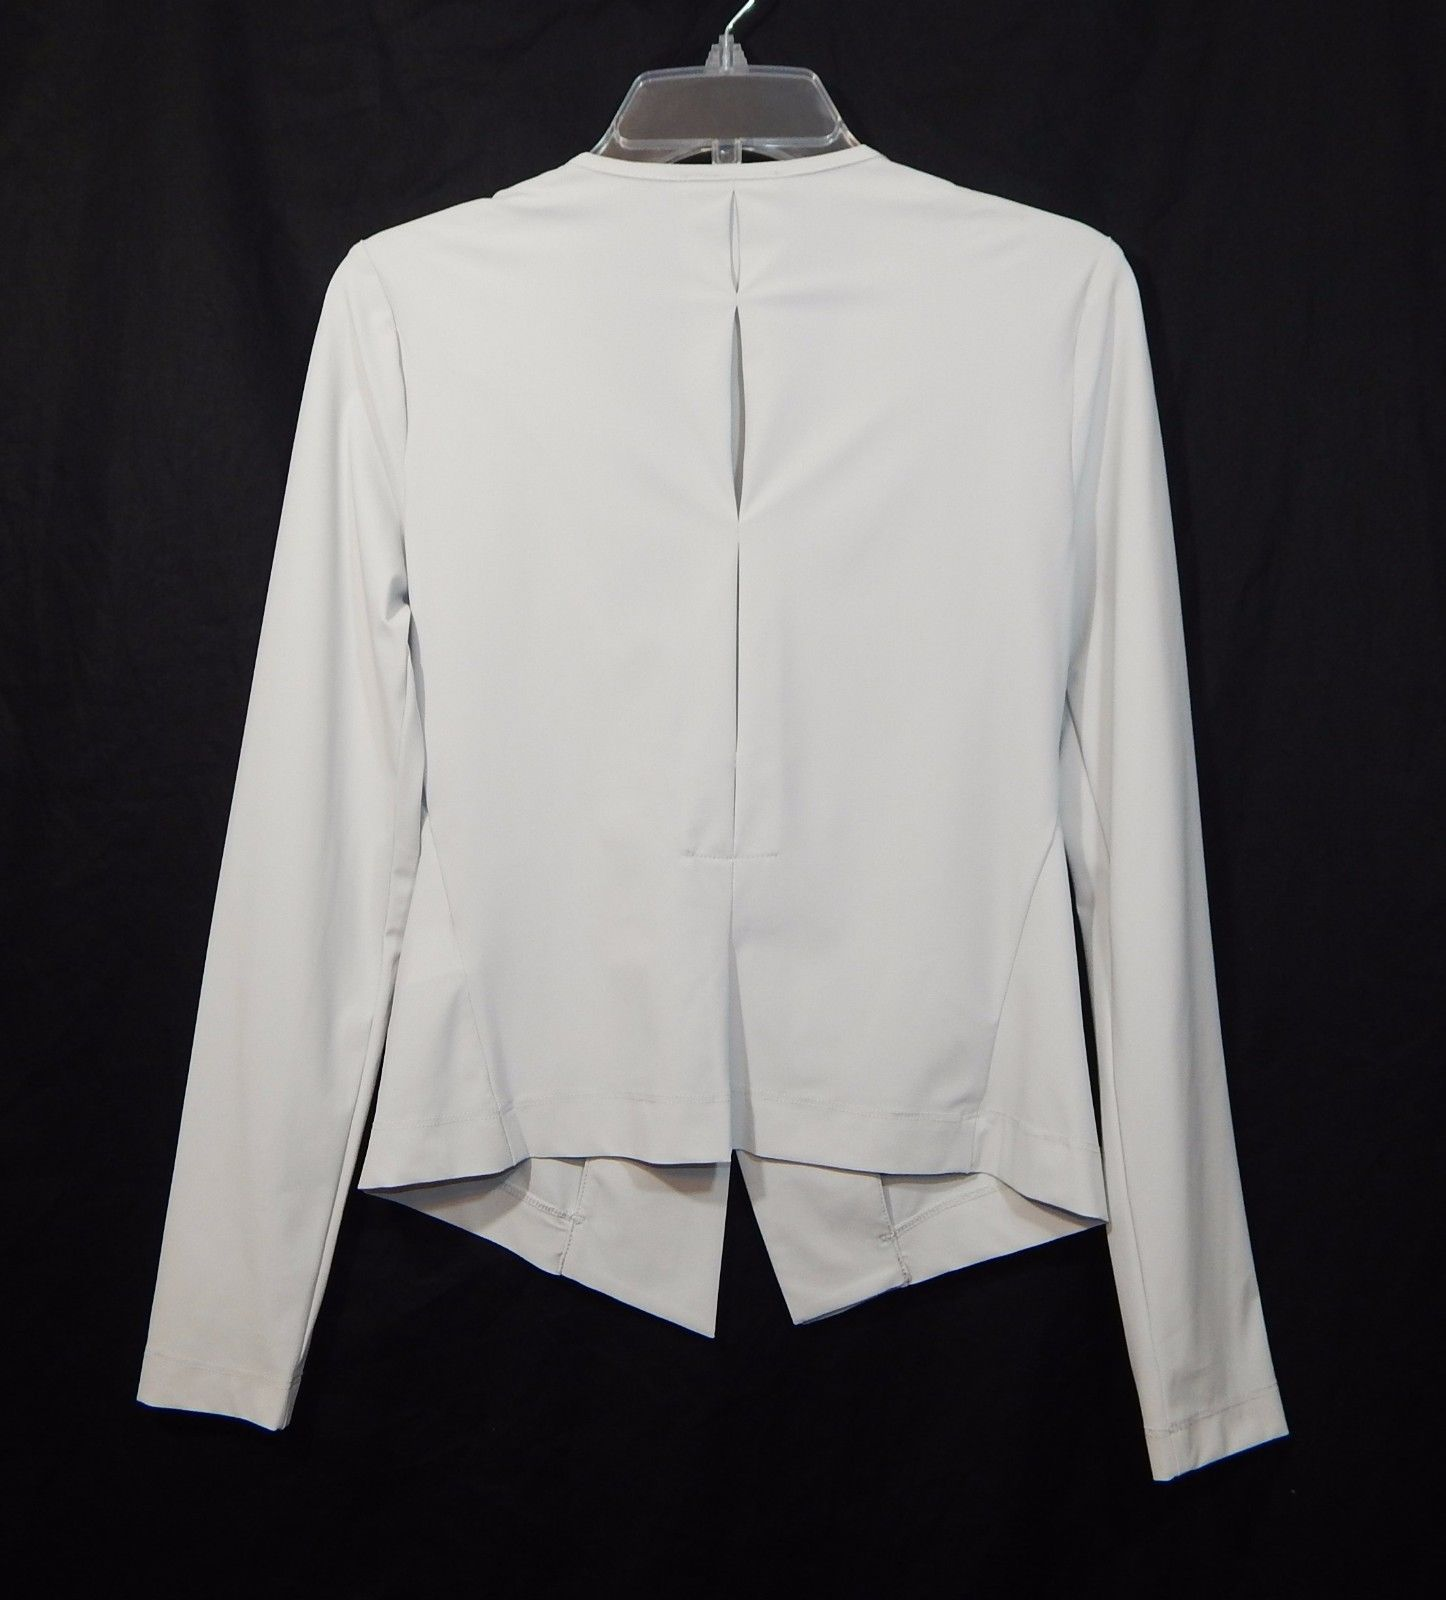 Awesome women's designer top made by Sarah Pacini in size 0. Cardigan style top/blazer with the perfect stretch for comfort and fit. Asymmetrical collar. Fashionable and versatile! | eBay!